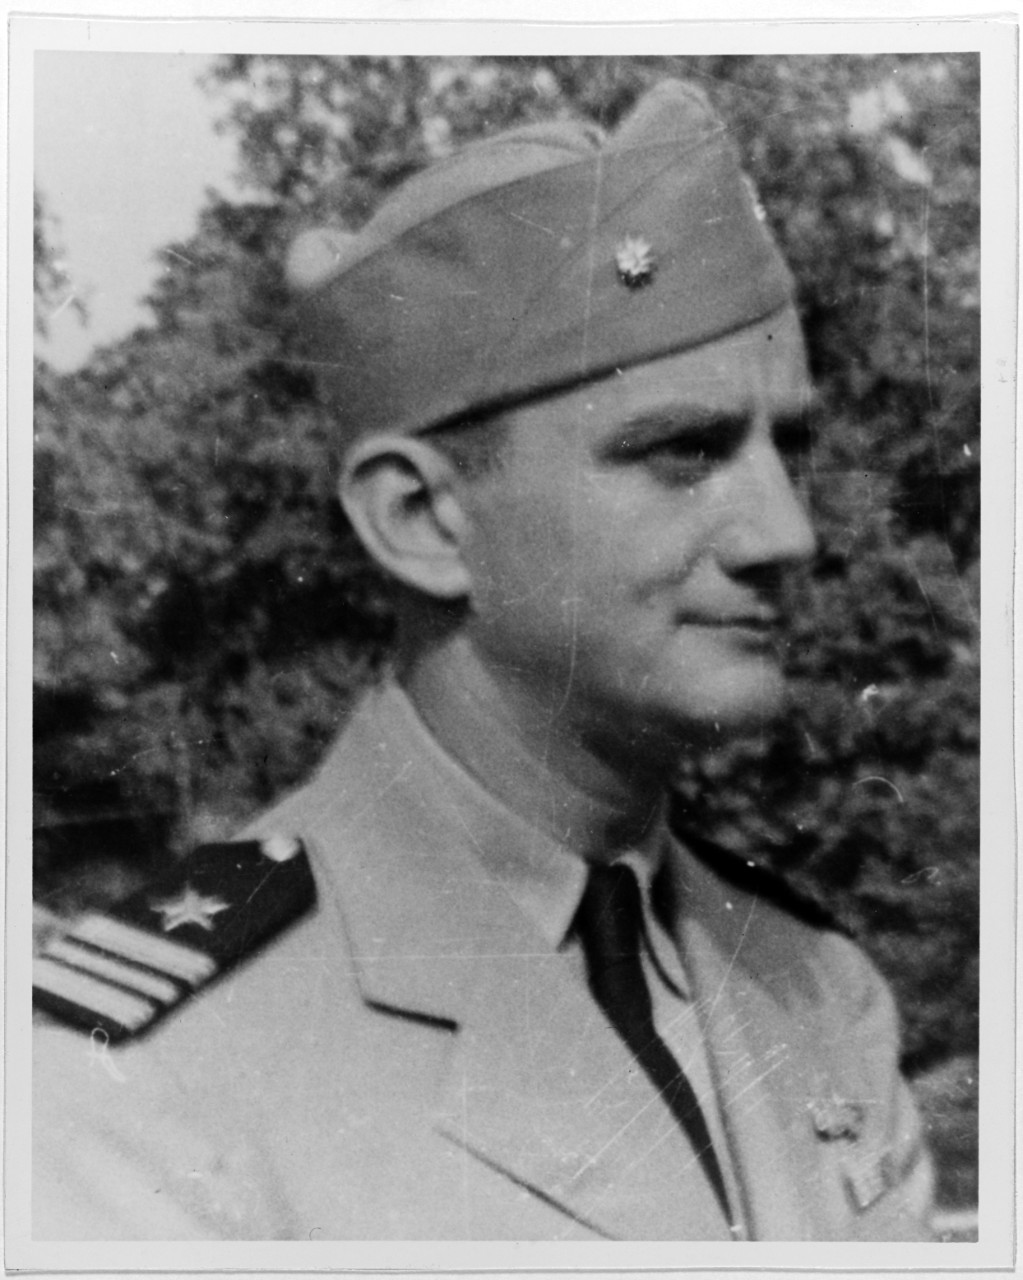 Photo #: NH 50661  Lieutenant Commander Fred Connaway, USN